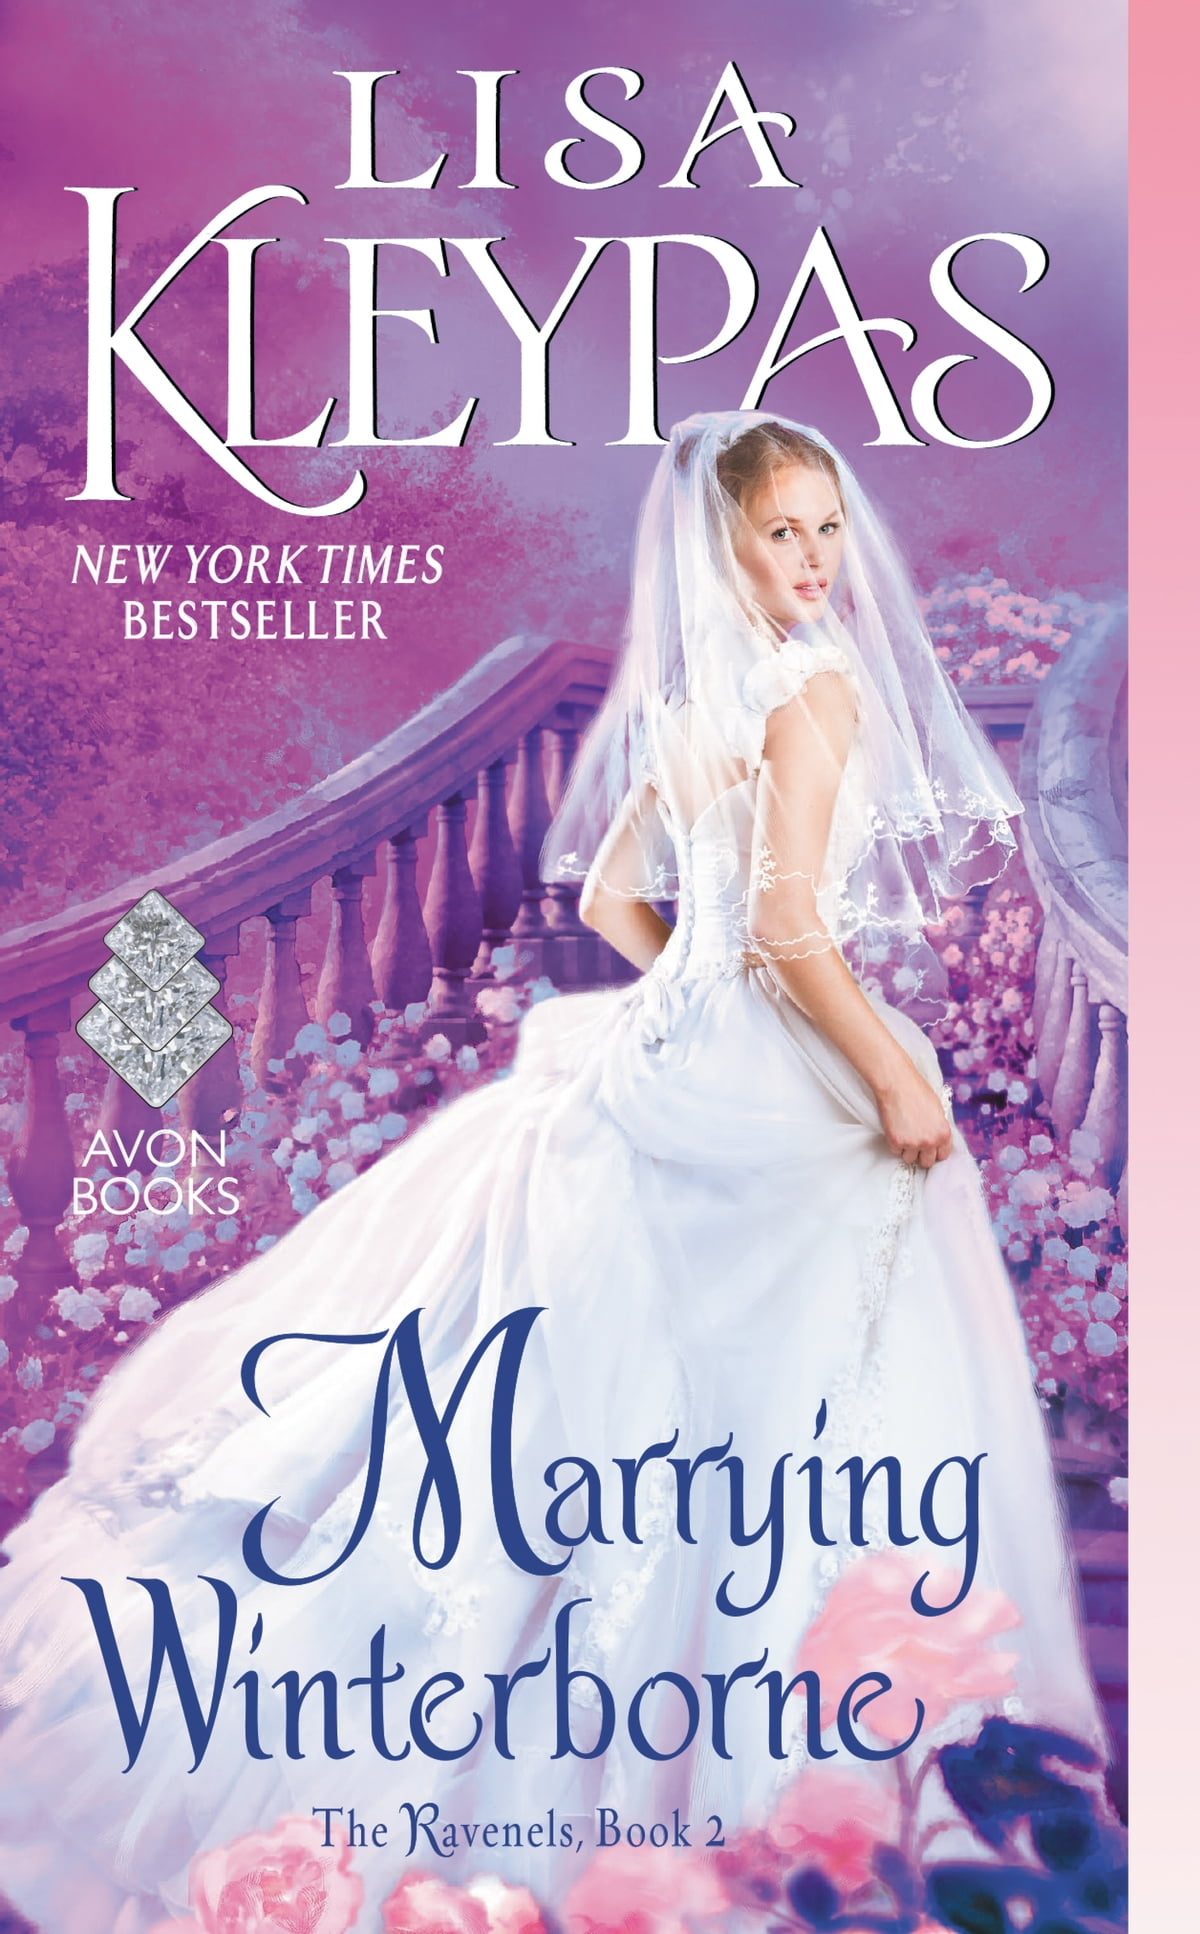 Libros De Lisa Kleypas Marrying Winterborne Ebooks By Lisa Kleypas Rakuten Kobo